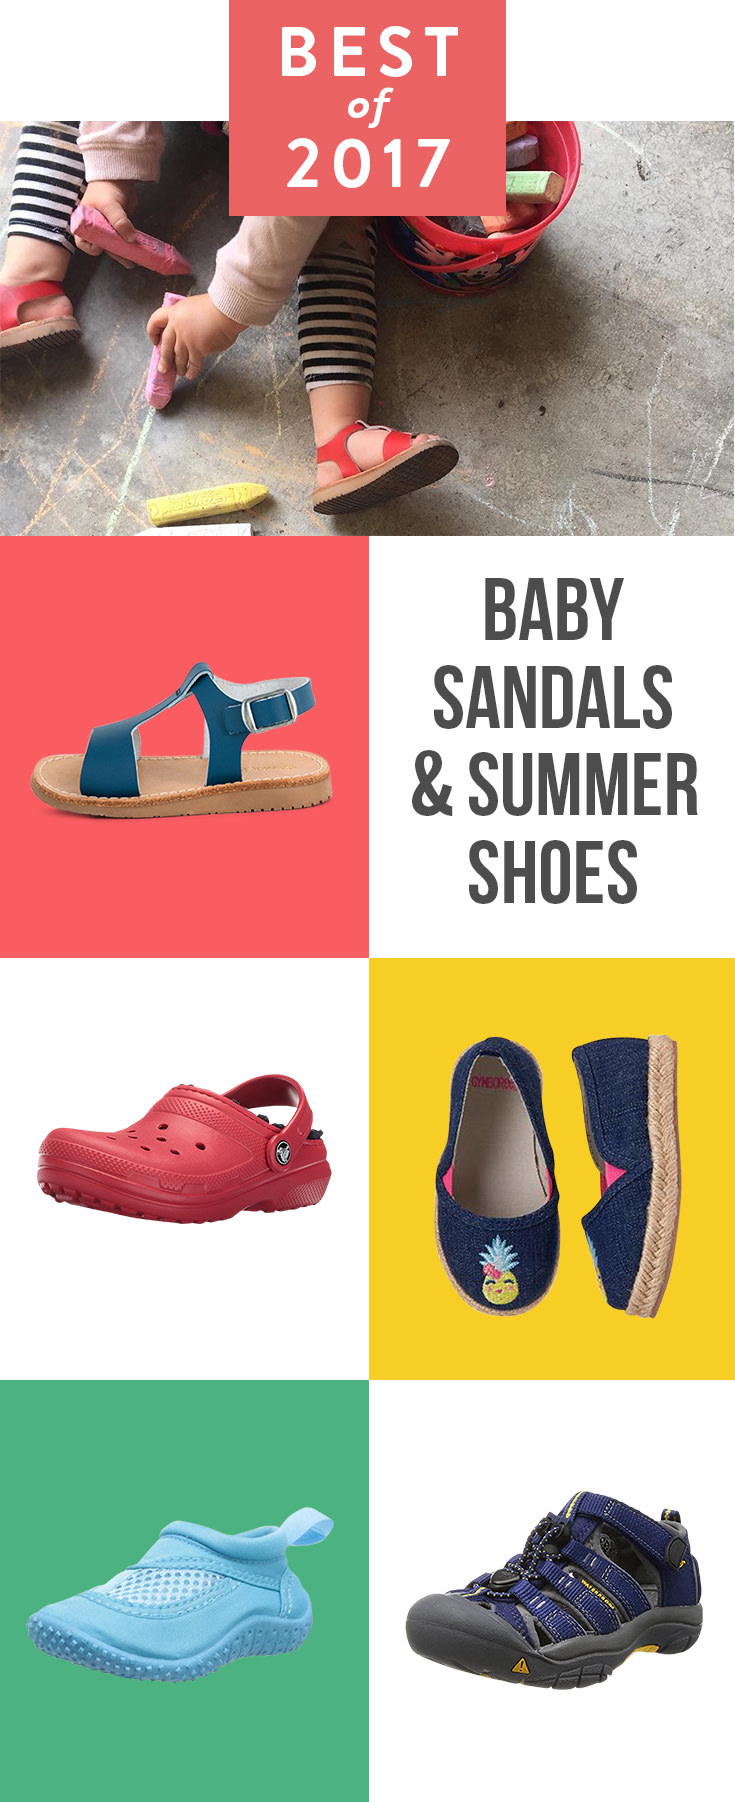 Headed to the beach? Or river or lake? These five sandals and water shoes will keep your babe's tootsies covered and cute.